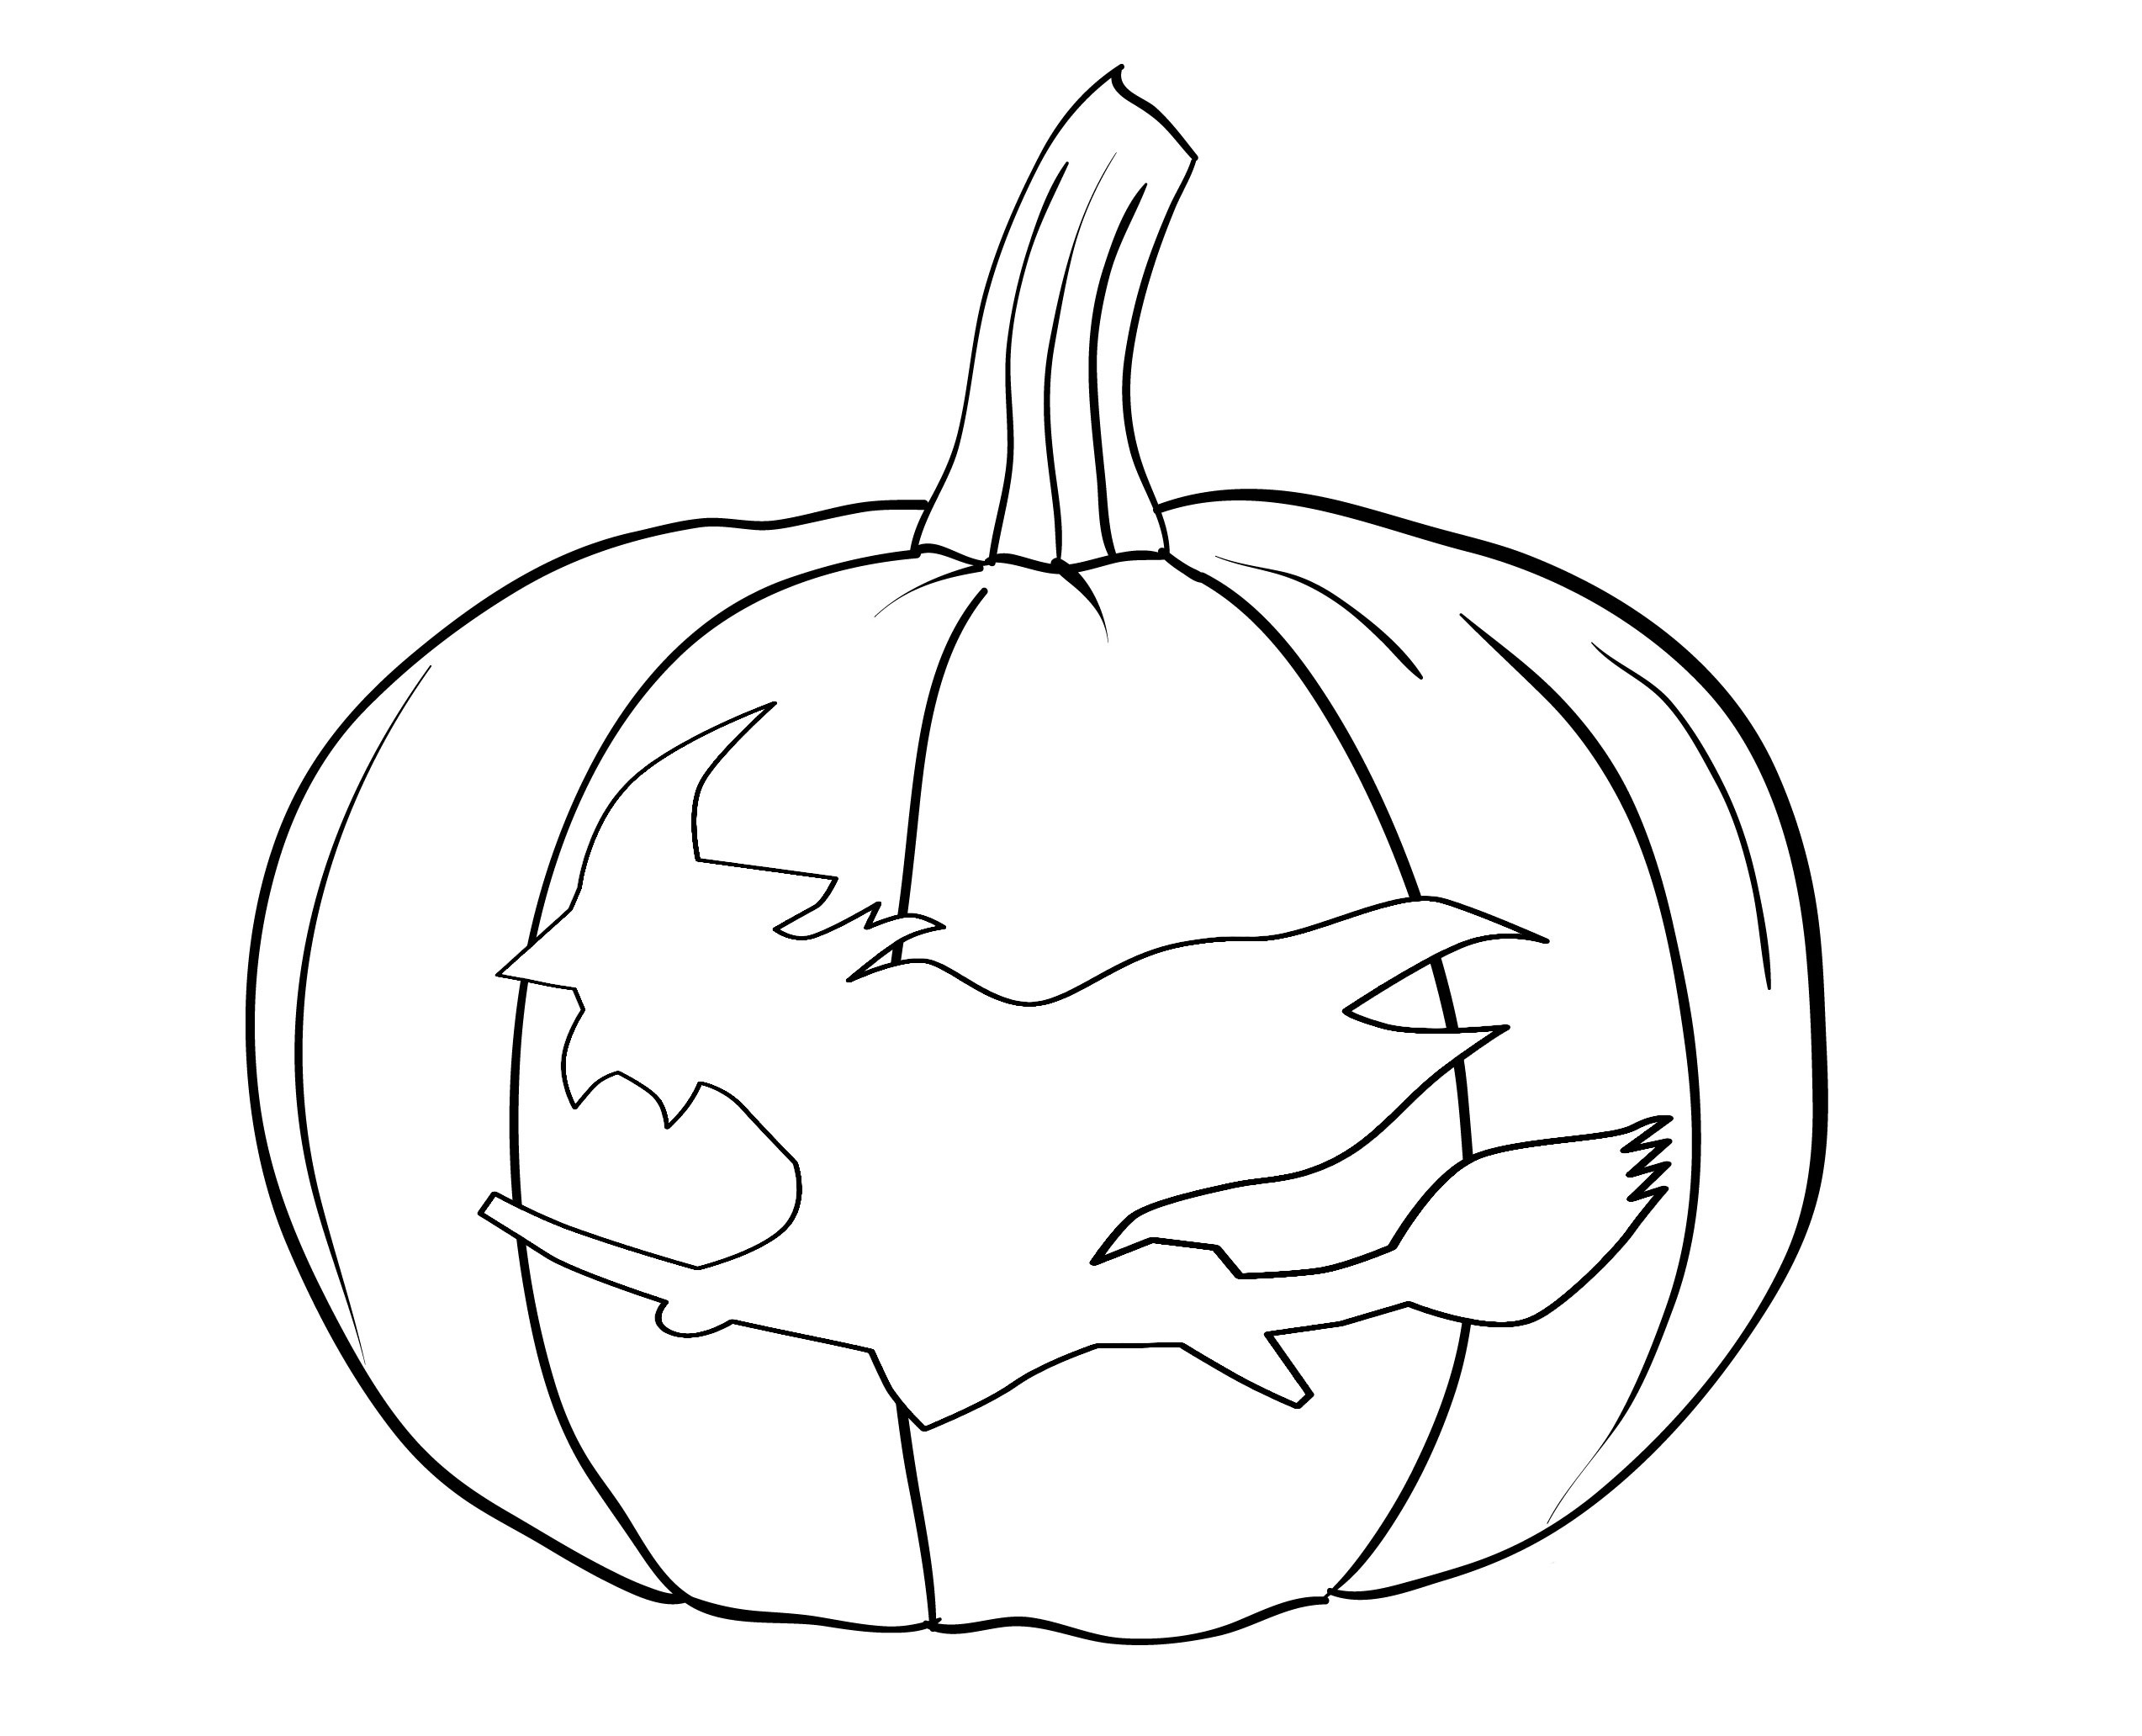 pumpking coloring pages pumpkins coloring page kids play color pages coloring pumpking